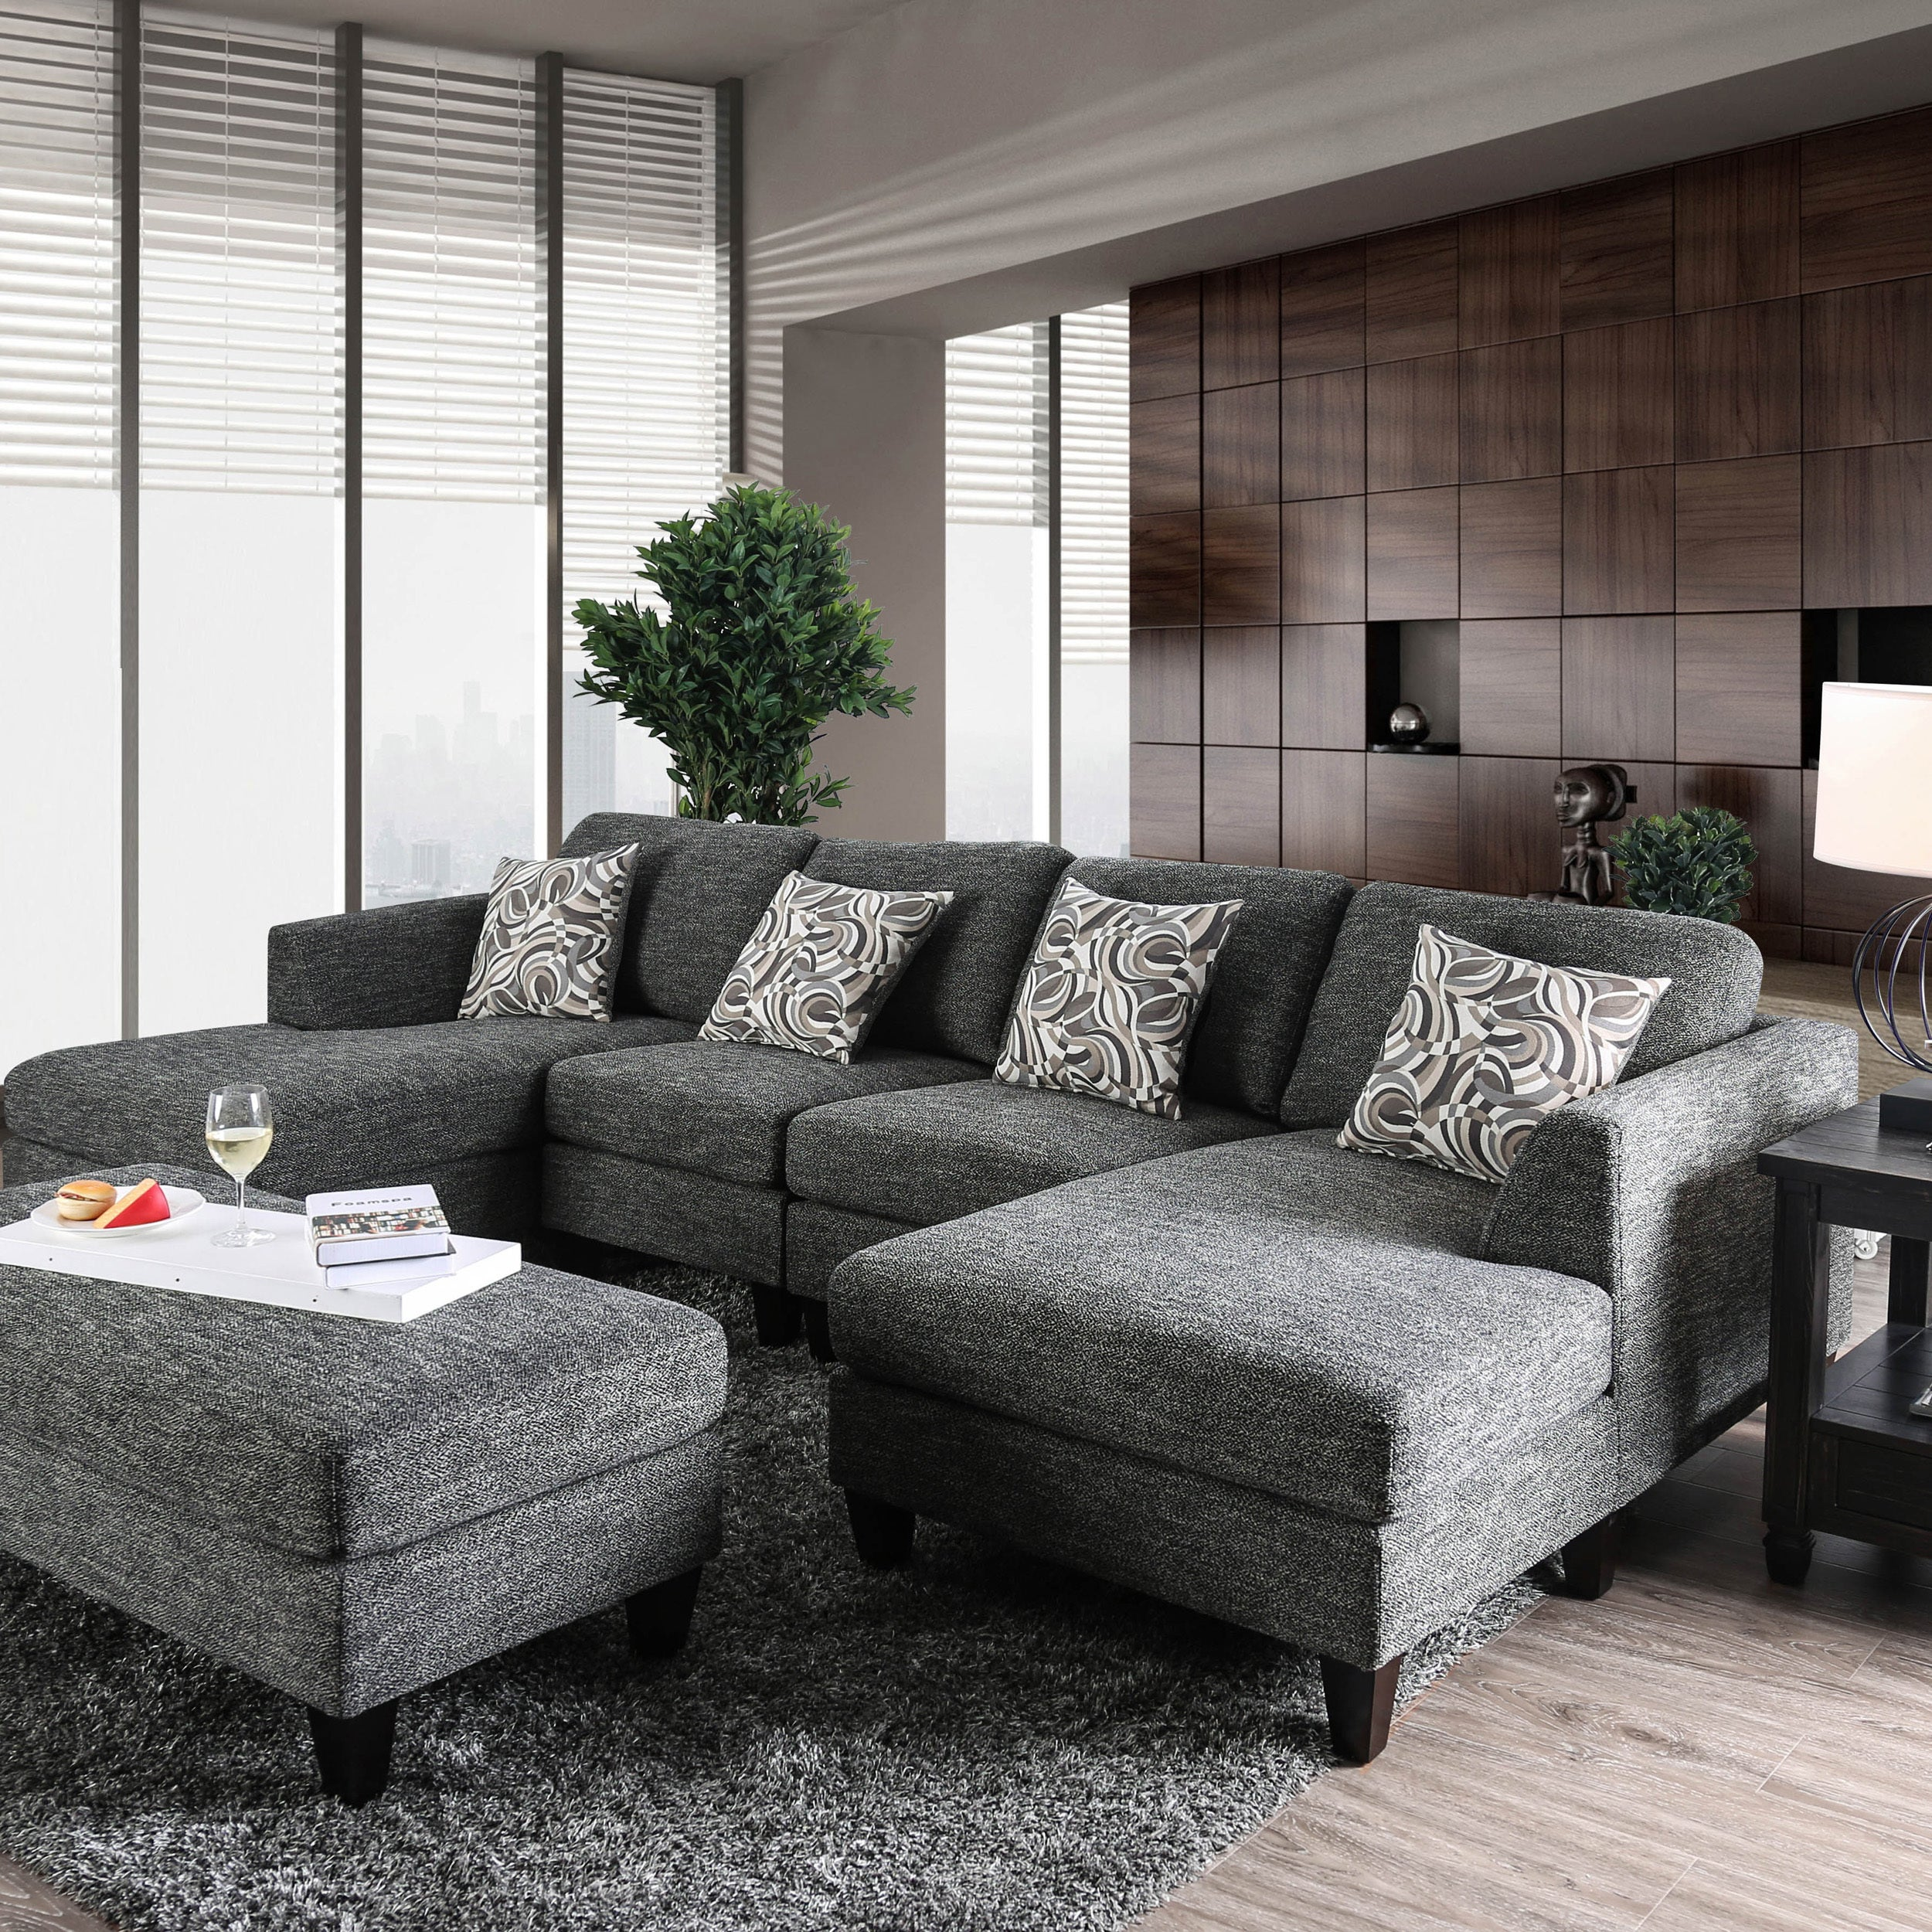 Breckenridge Grey 4-piece Chenille Modular Sectional Sofa by FOA